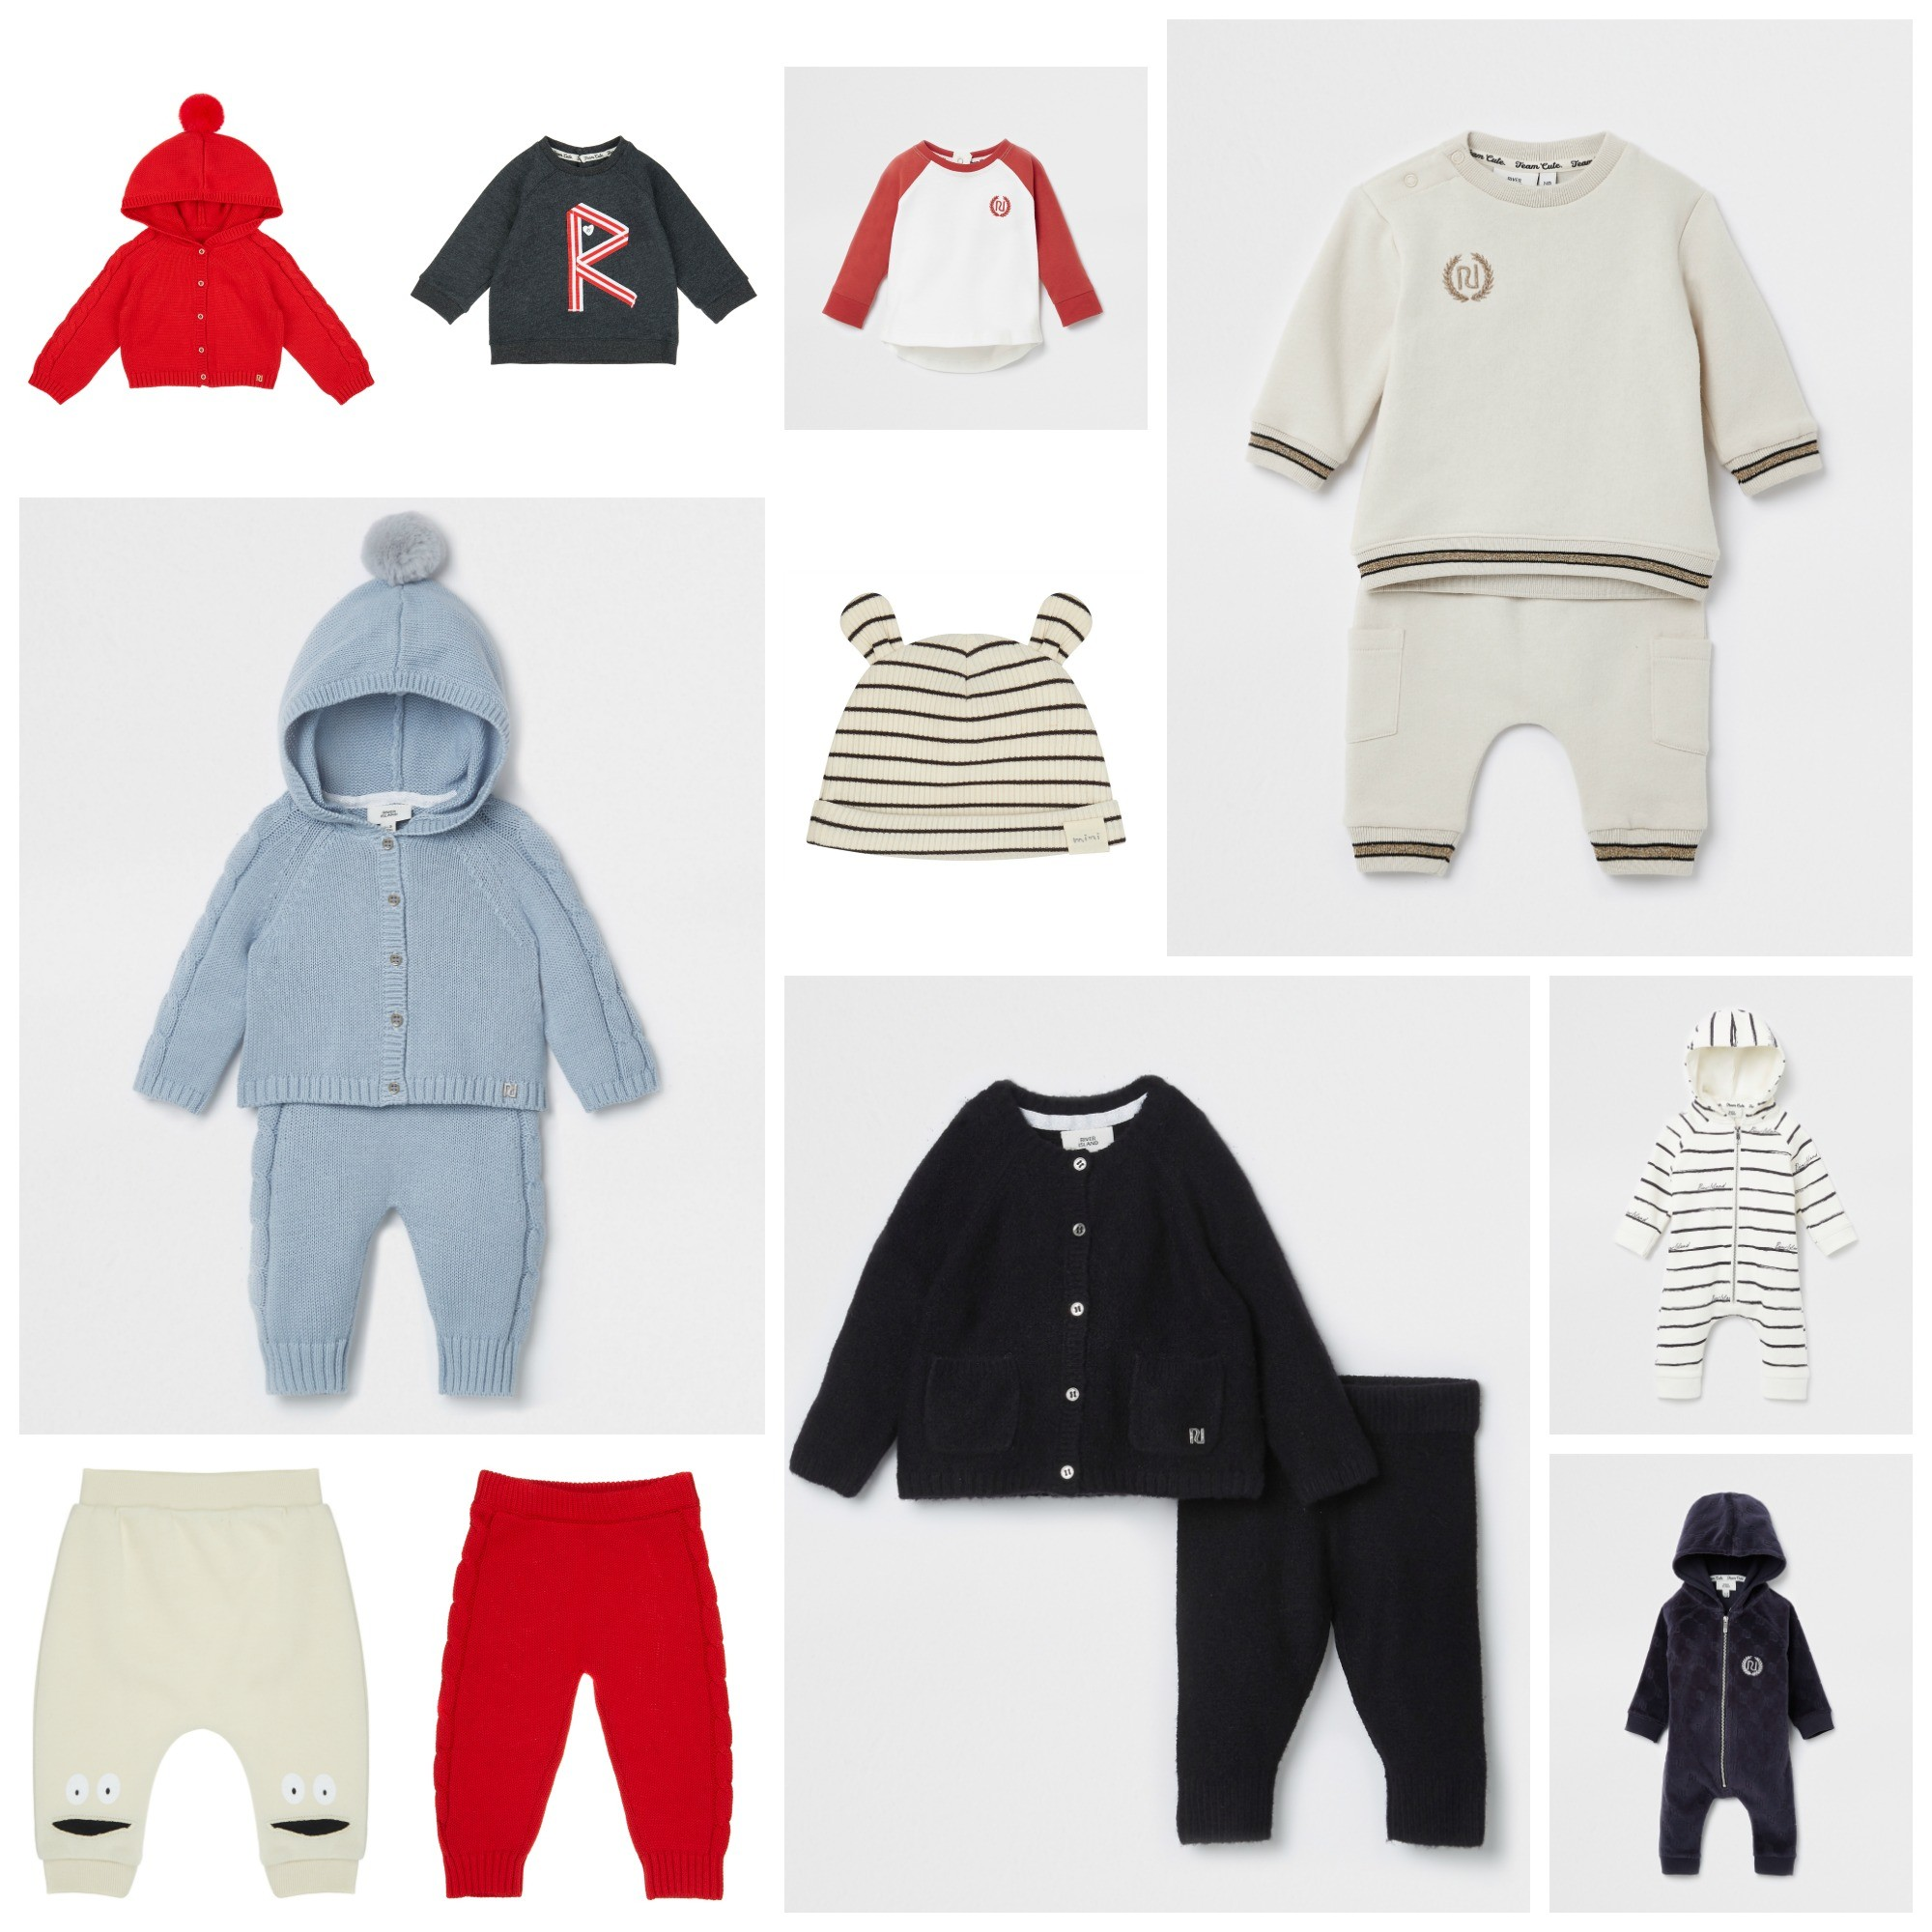 The new River Island baby collection has arrived...